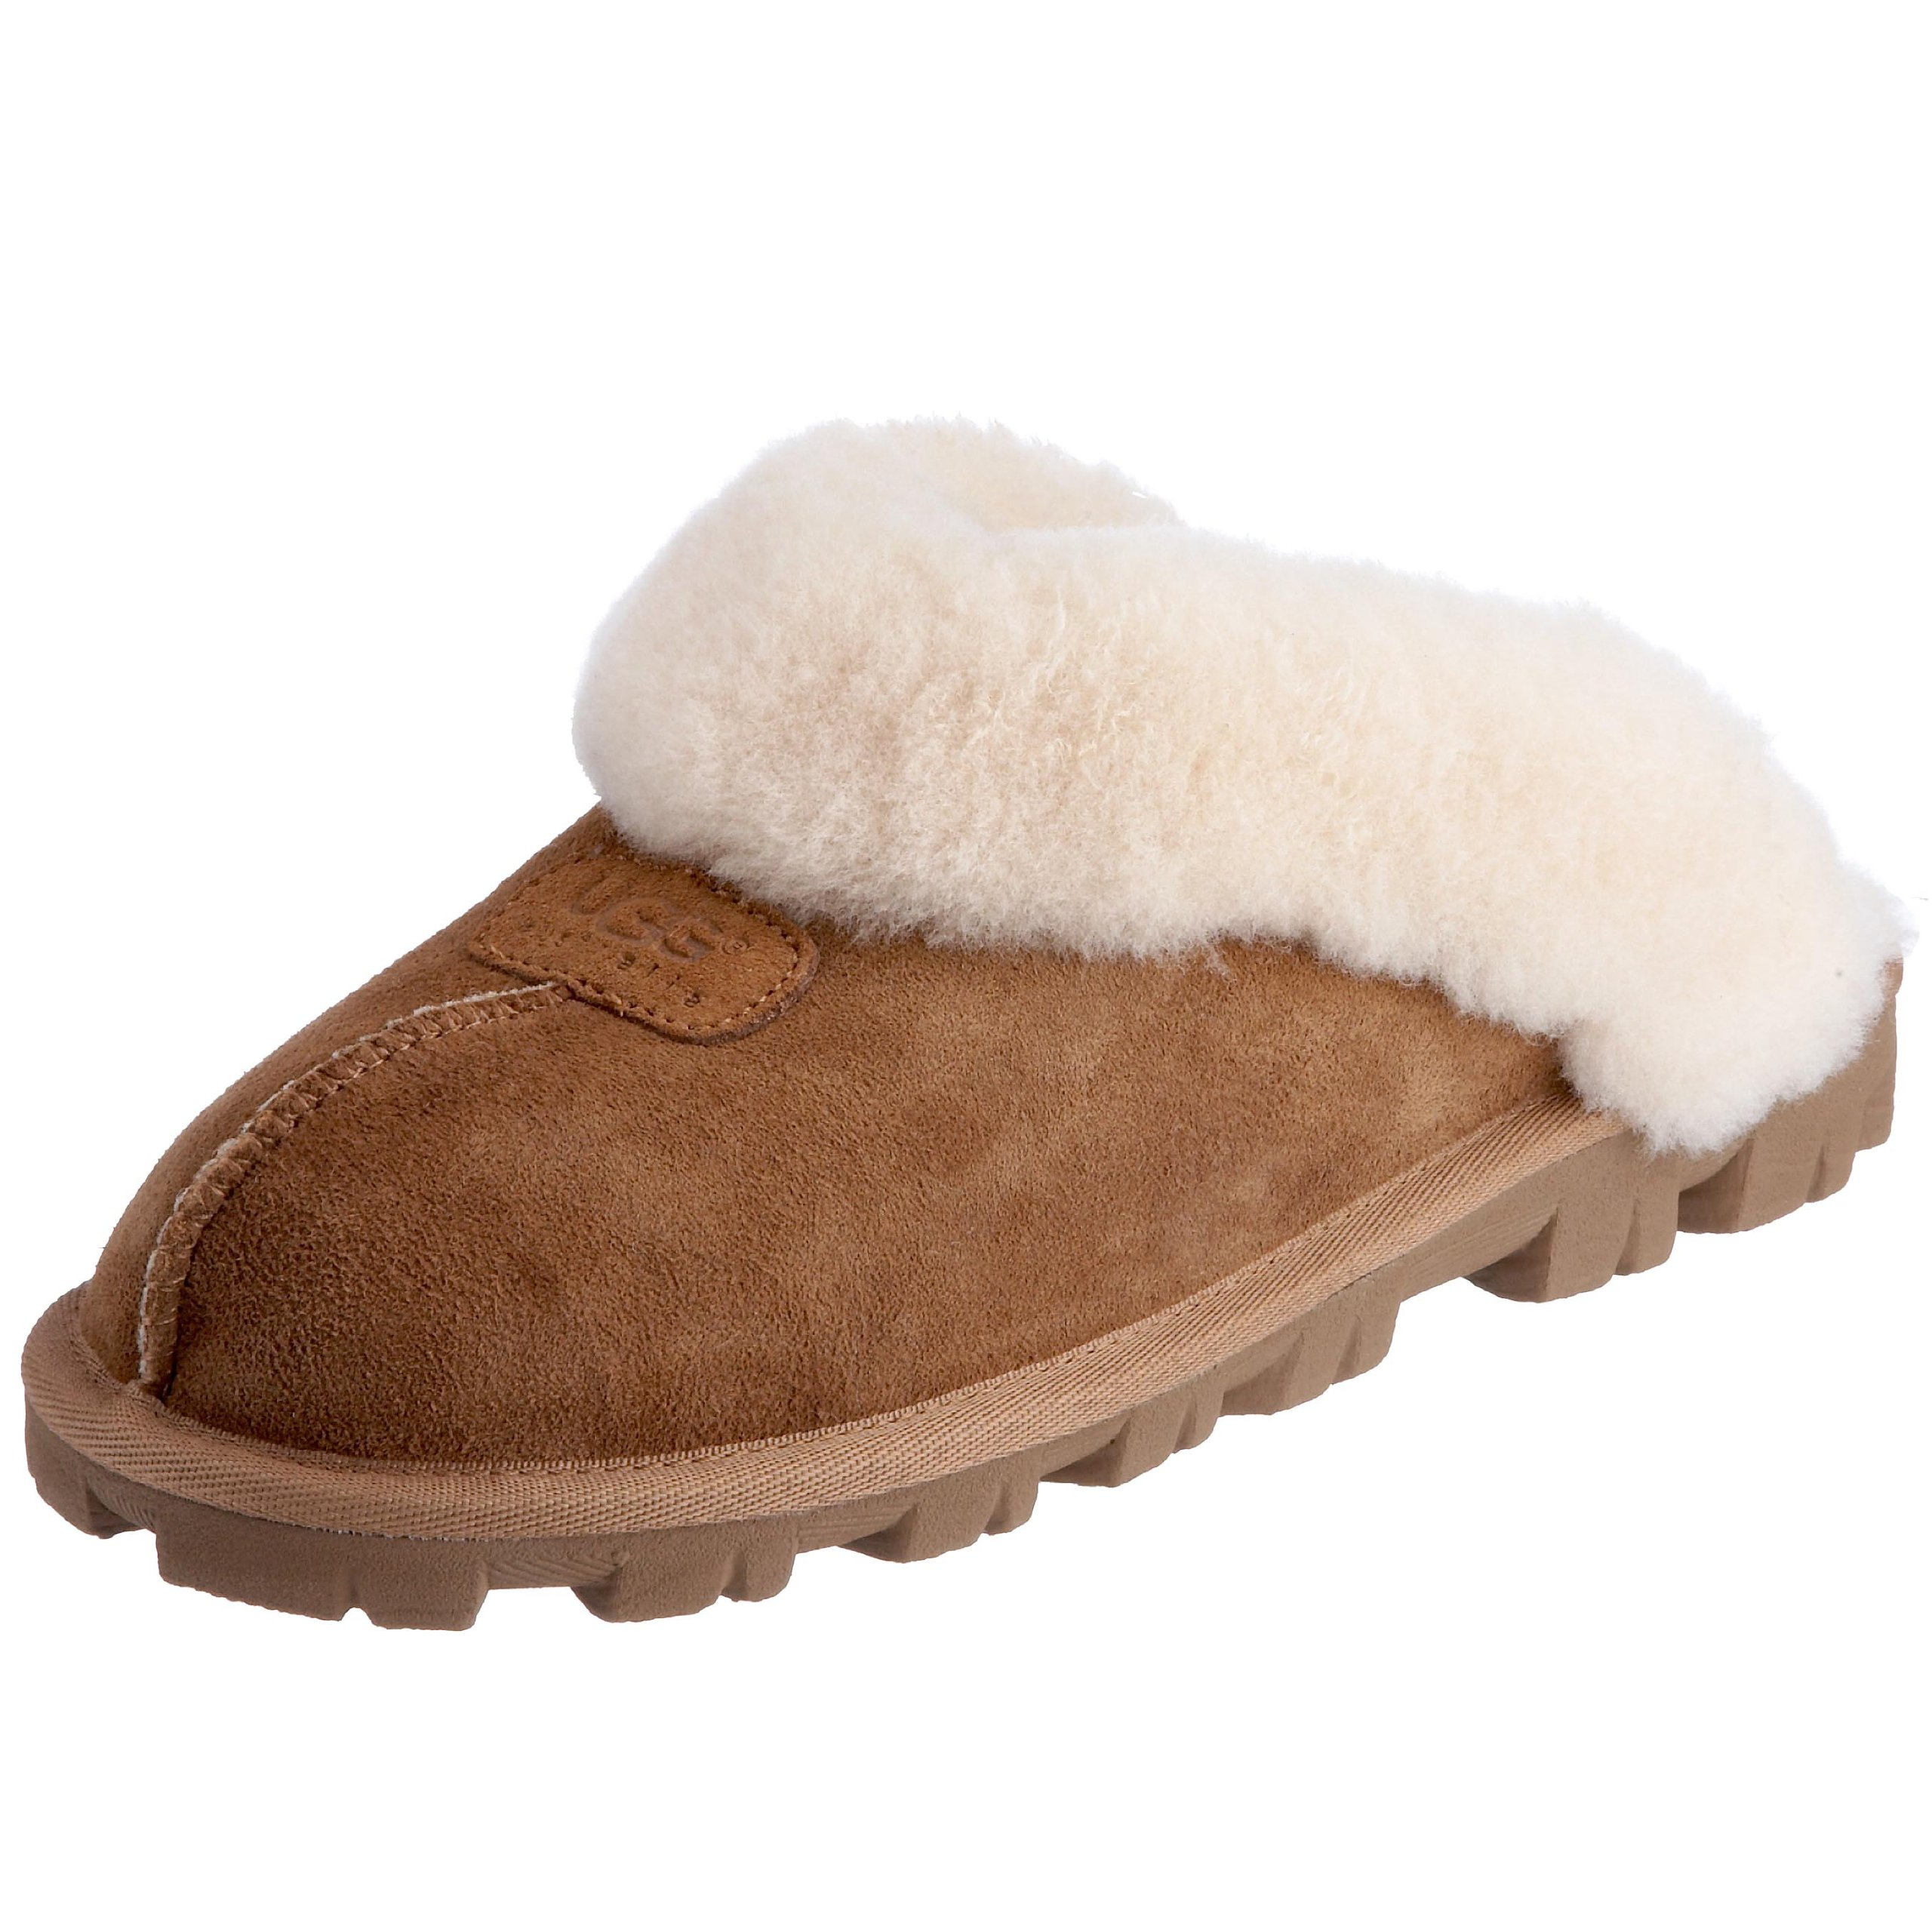 UGG Women's Coquette Slipper, Chestnut, 9 US/9 B US